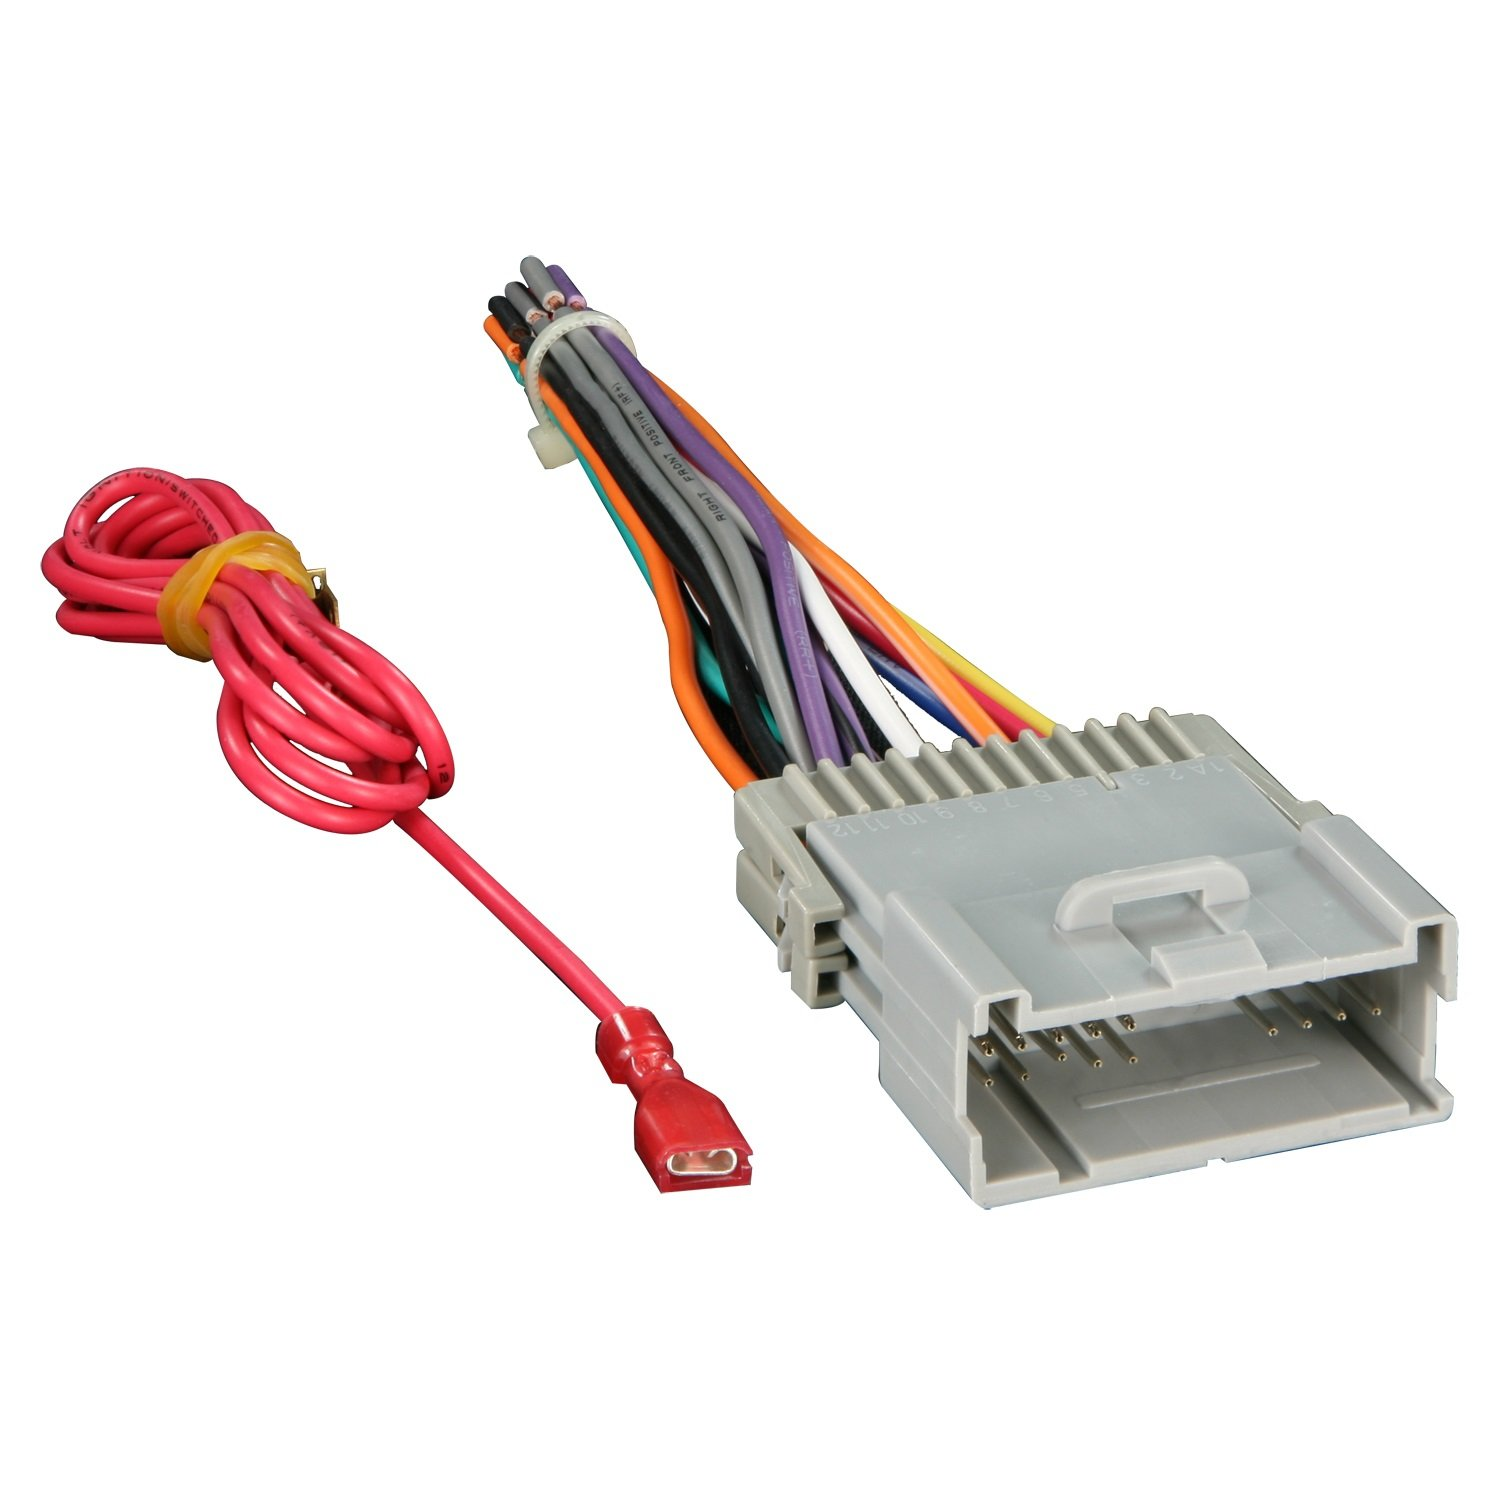 61eewxp9orL._SL1500_ amazon com metra 70 2003 radio wiring harness for gm 98 08 wiring harness for car stereo installation at metegol.co